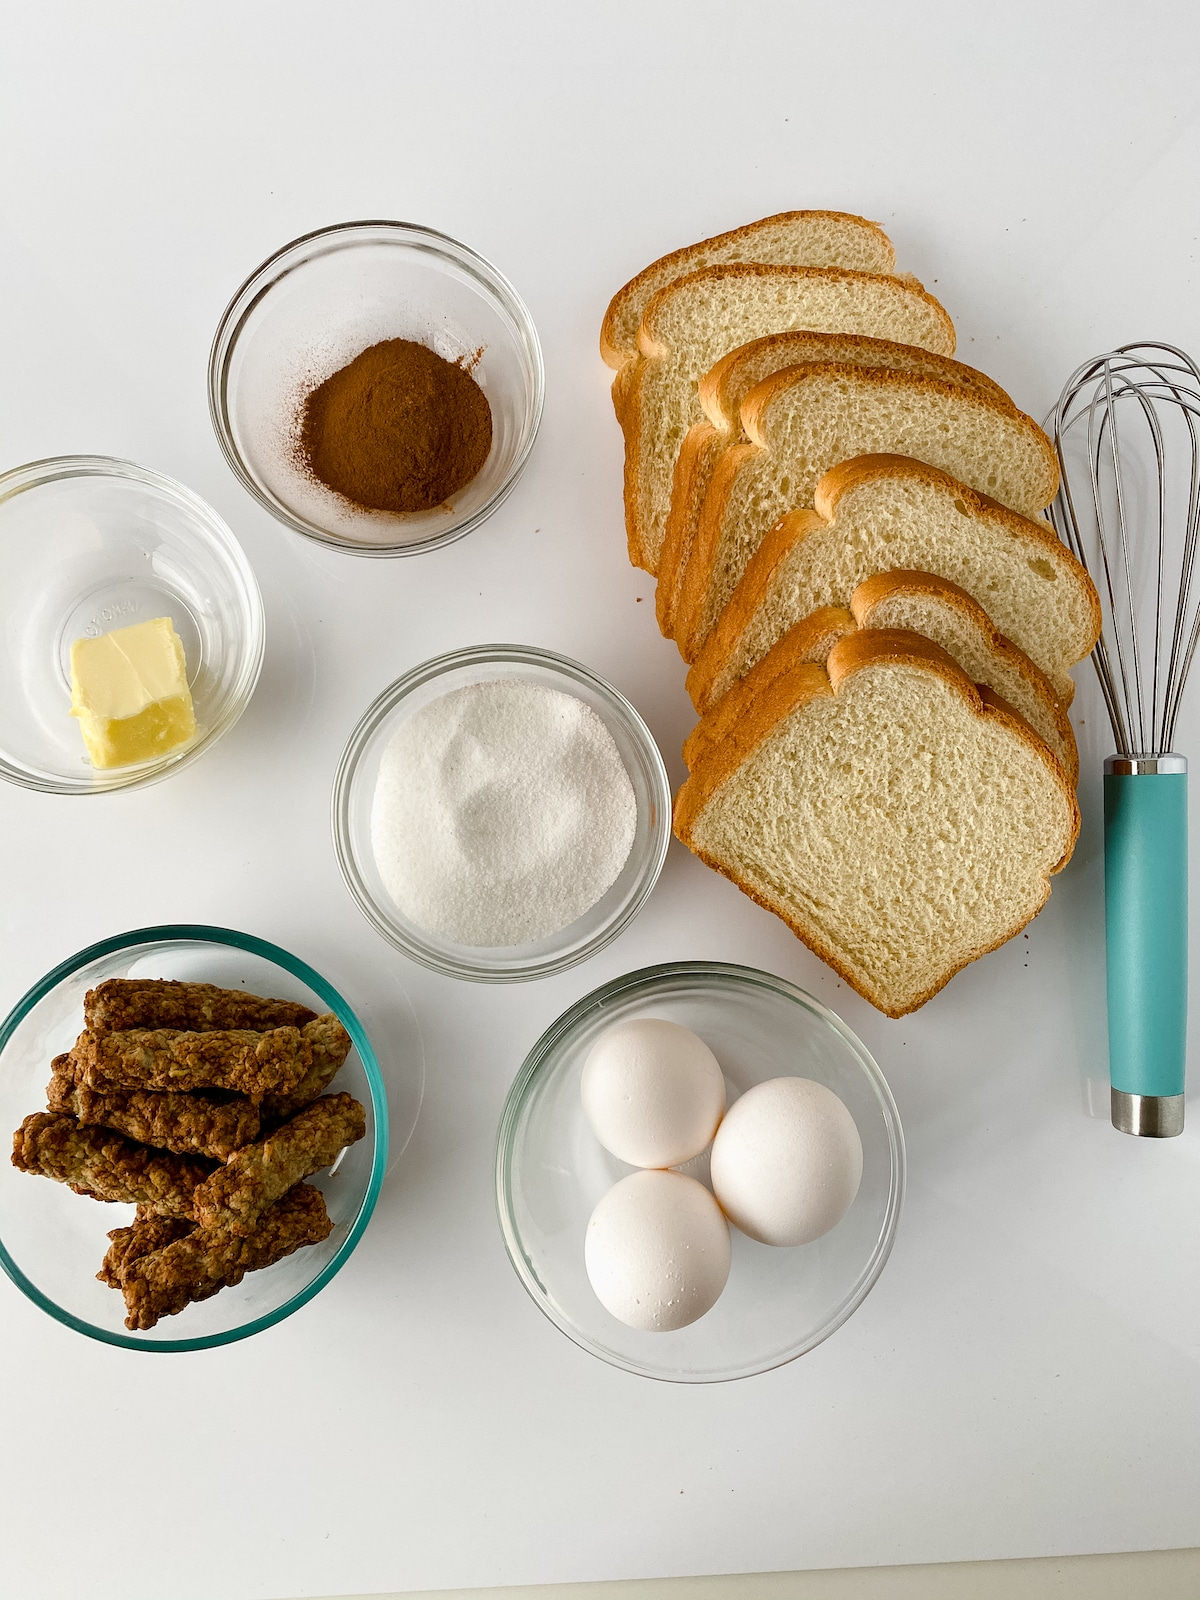 Ingredients for sausage stuffed French toast